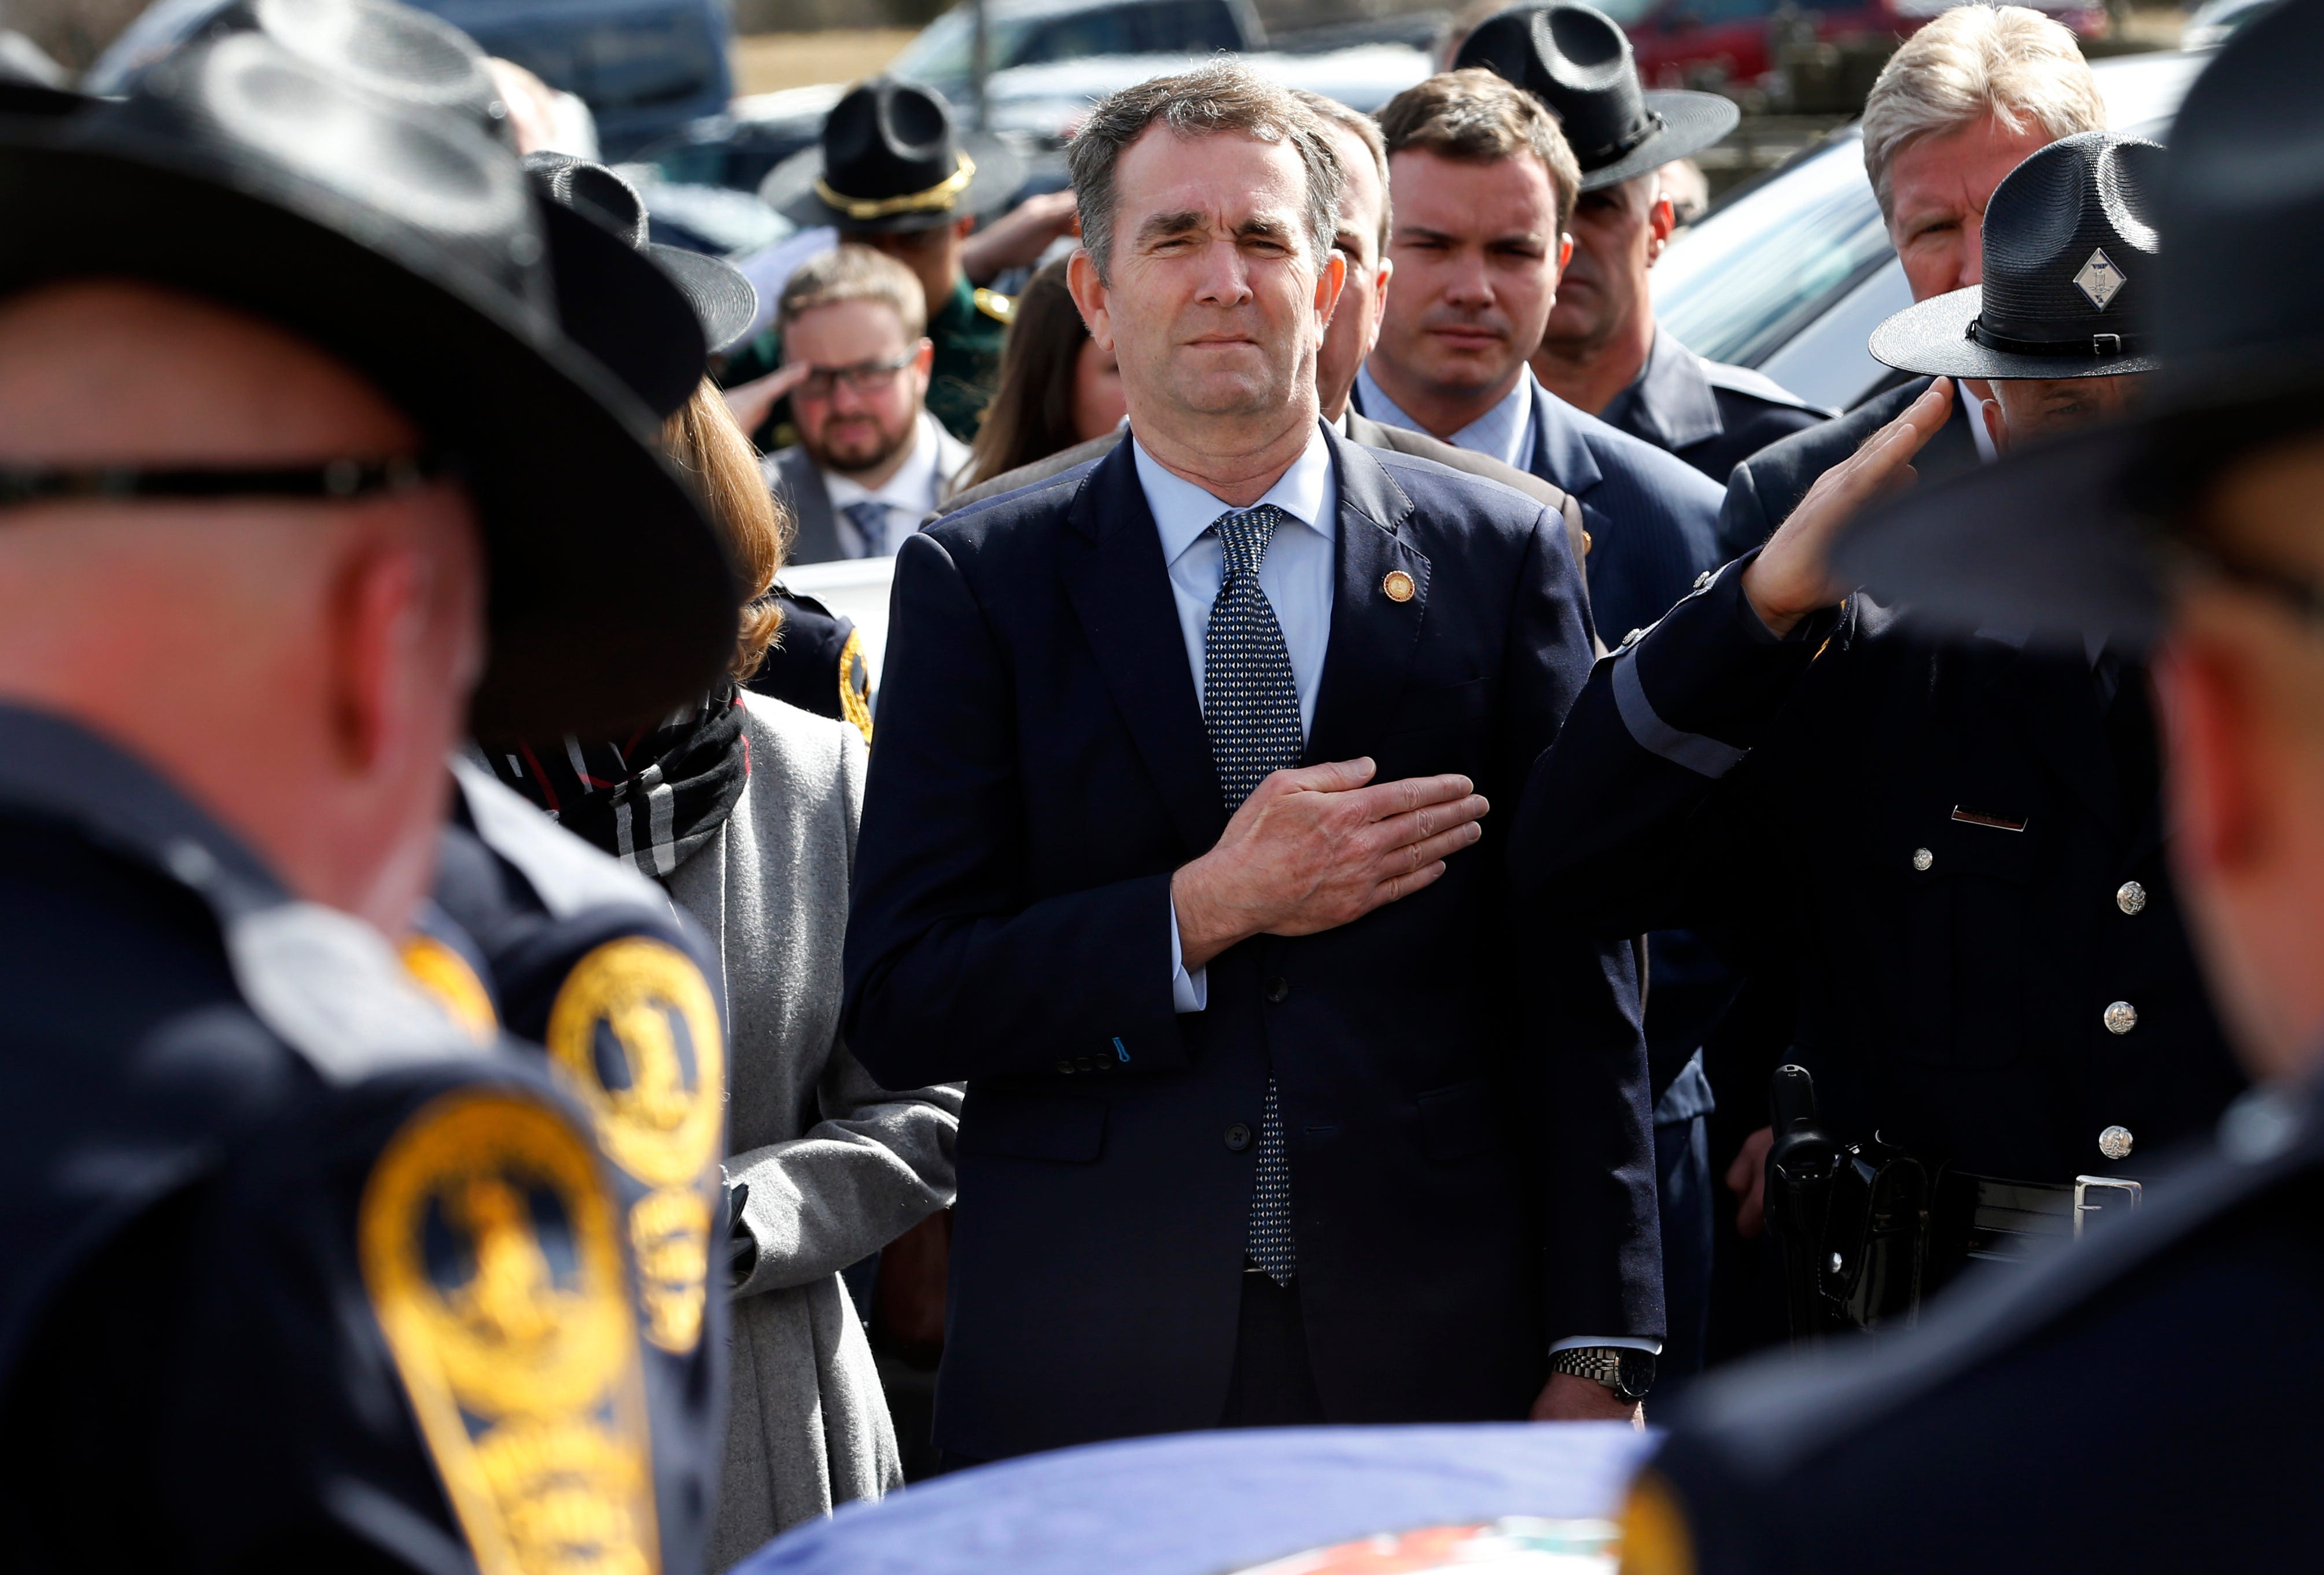 Virginia Gov. Ralph Northam, center, and his wife Pam, watch as the casket of fallen Virginia State Trooper Lucas B. Dowell is carried to a waiting tactical vehicle during the funeral at the Chilhowie Christian Church in Chilhowie, Va., Saturday, Feb. 9, 2019. Dowell was killed in the line of duty earlier in the week.